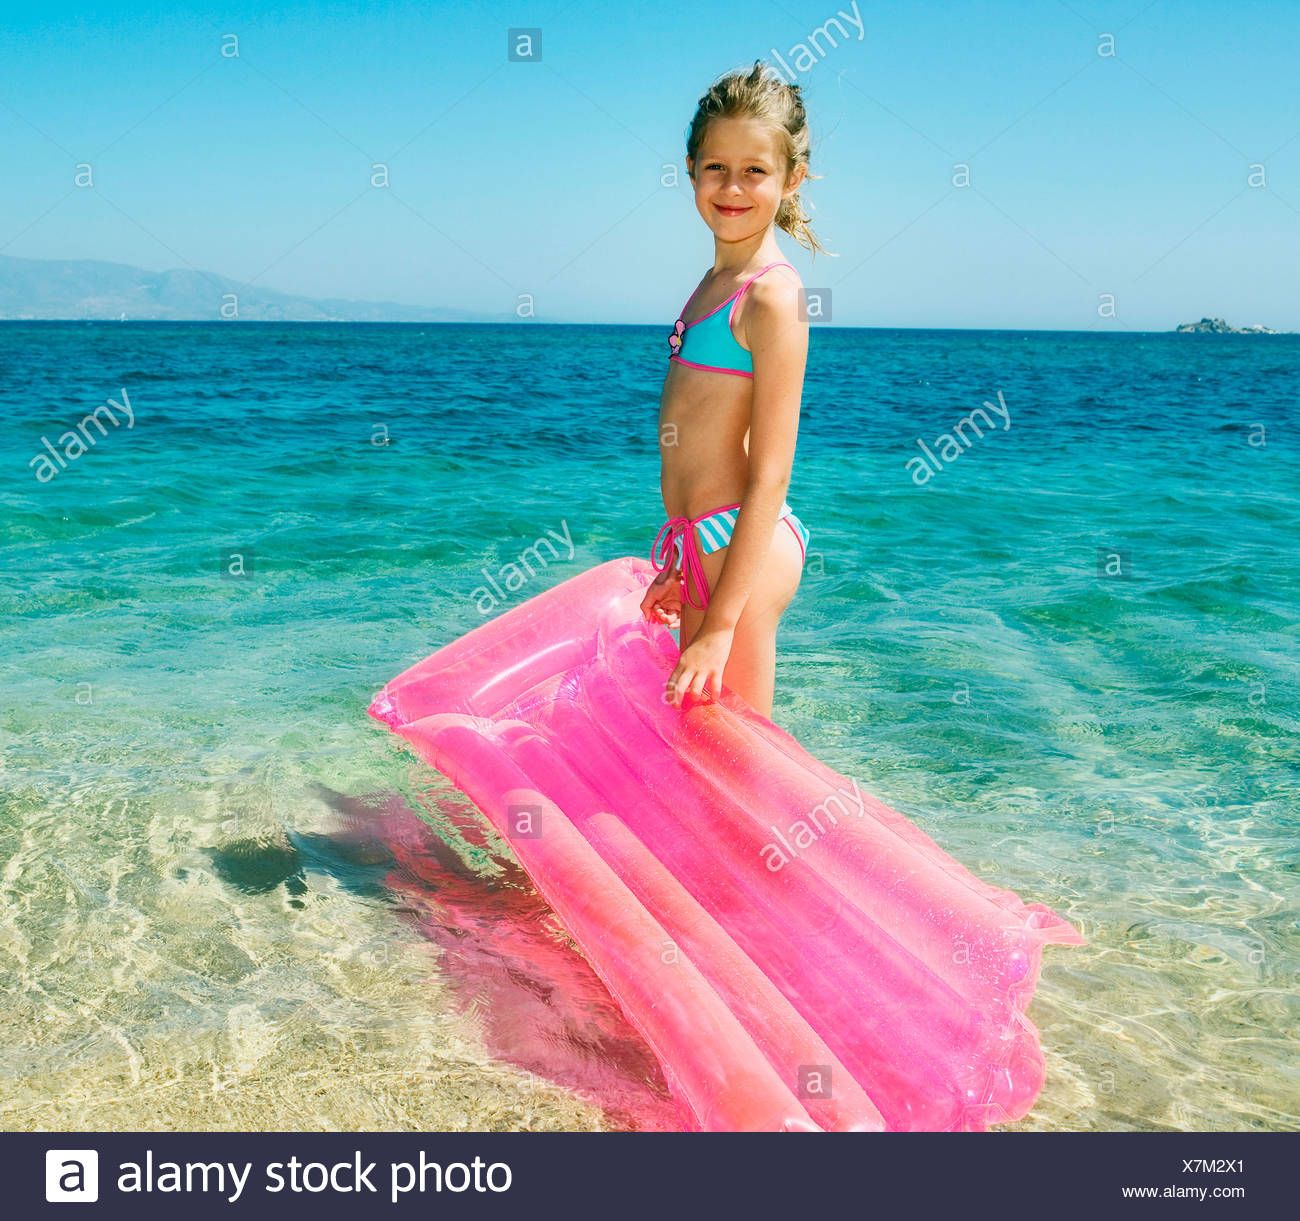 Young girl holding an inflatable raft at the beach smiling. Stock Photo